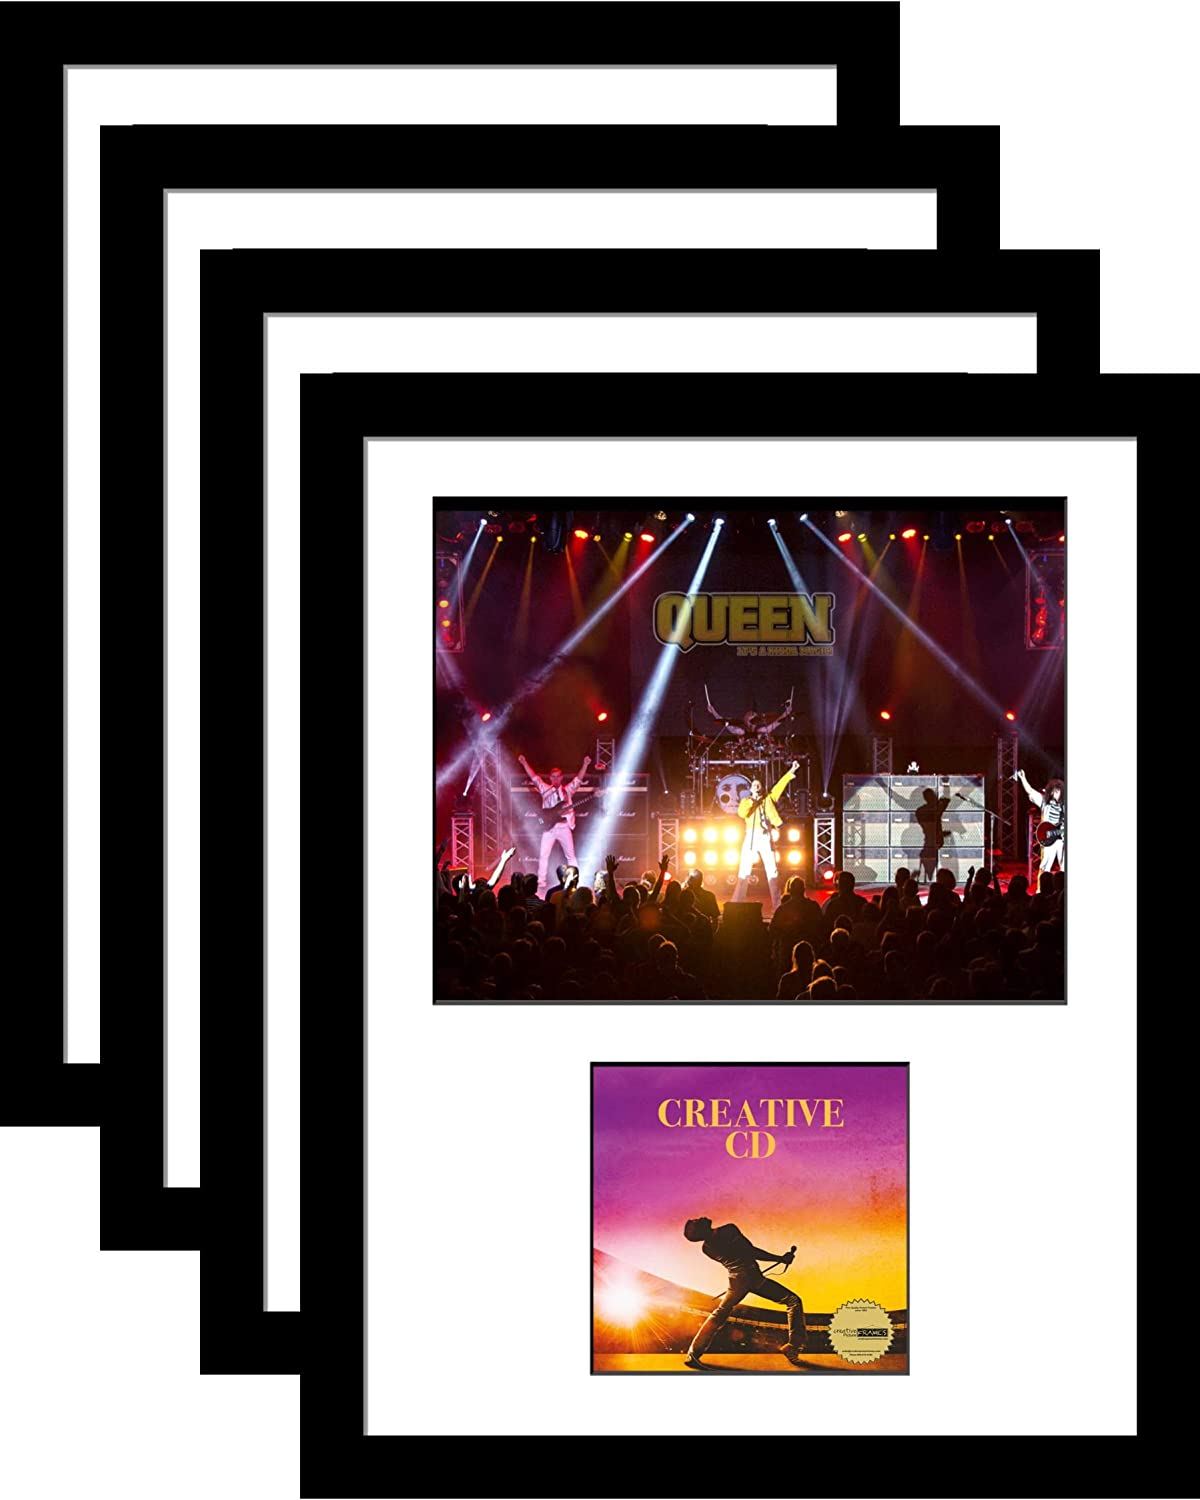 Creative Picture Frames 8 x 10 Photo CD Music Frame with White Matting Displays Picture and Jewel Cover Self Standing or Wall Display (Pack of 4)